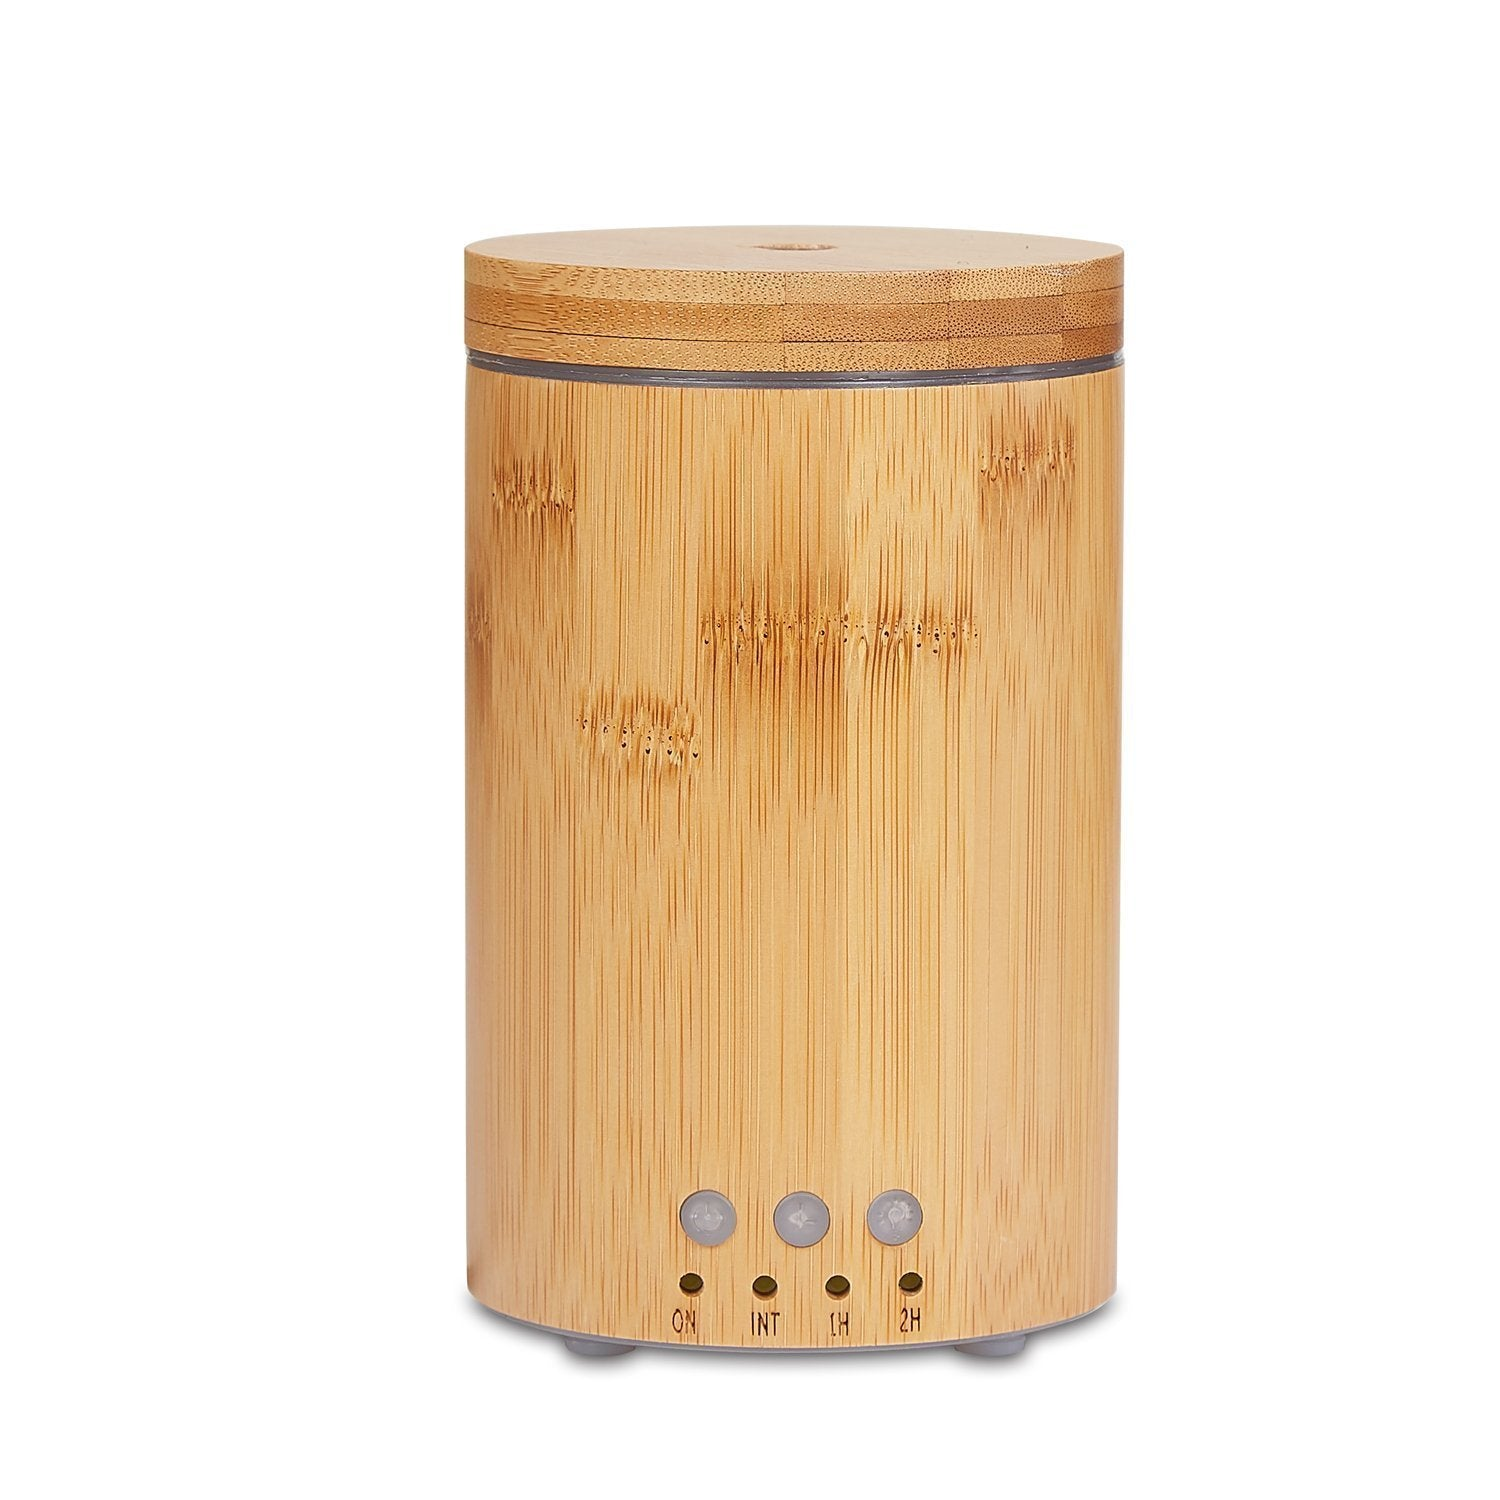 Bamboo Essential Oil Diffuser & Humidifier - anatomé